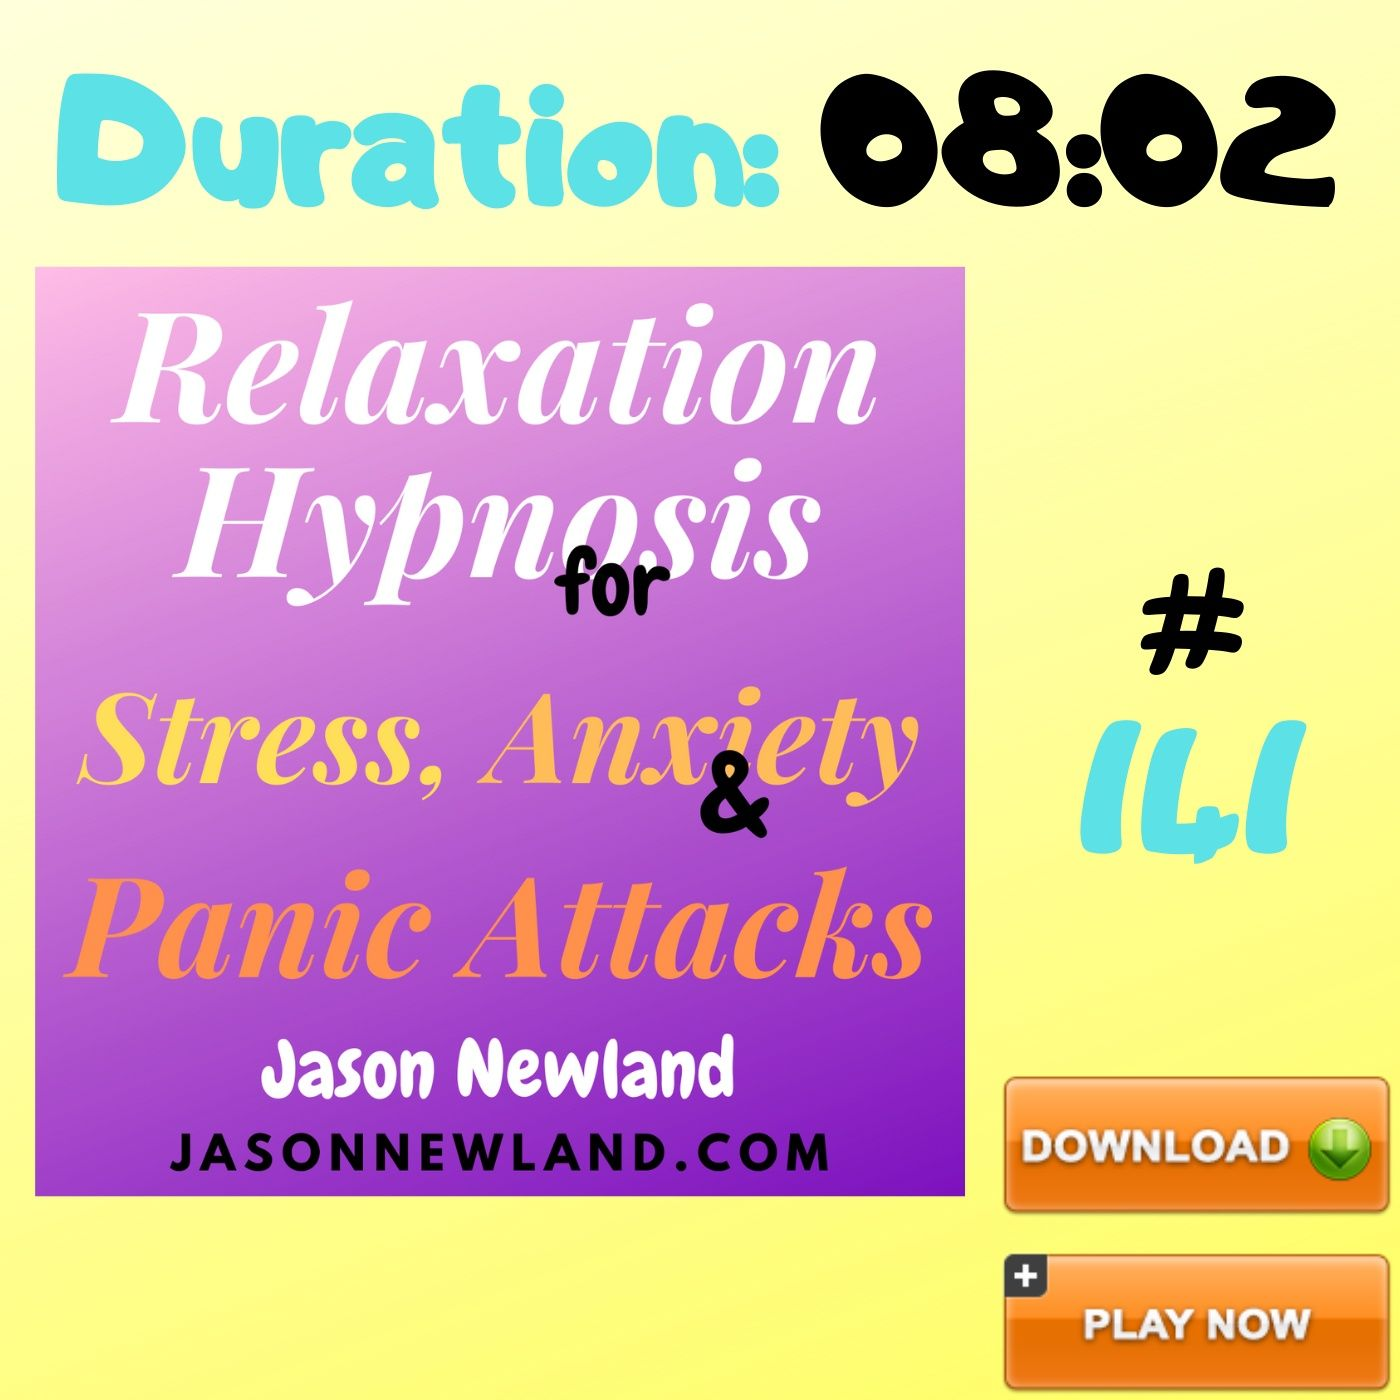 "#141 Relaxation Hypnosis for Stress, Anxiety & Panic Attacks - ""I'D LIKE TO FEEL MORE RELAXED"" (Jason Newland) (26th May 2020)"